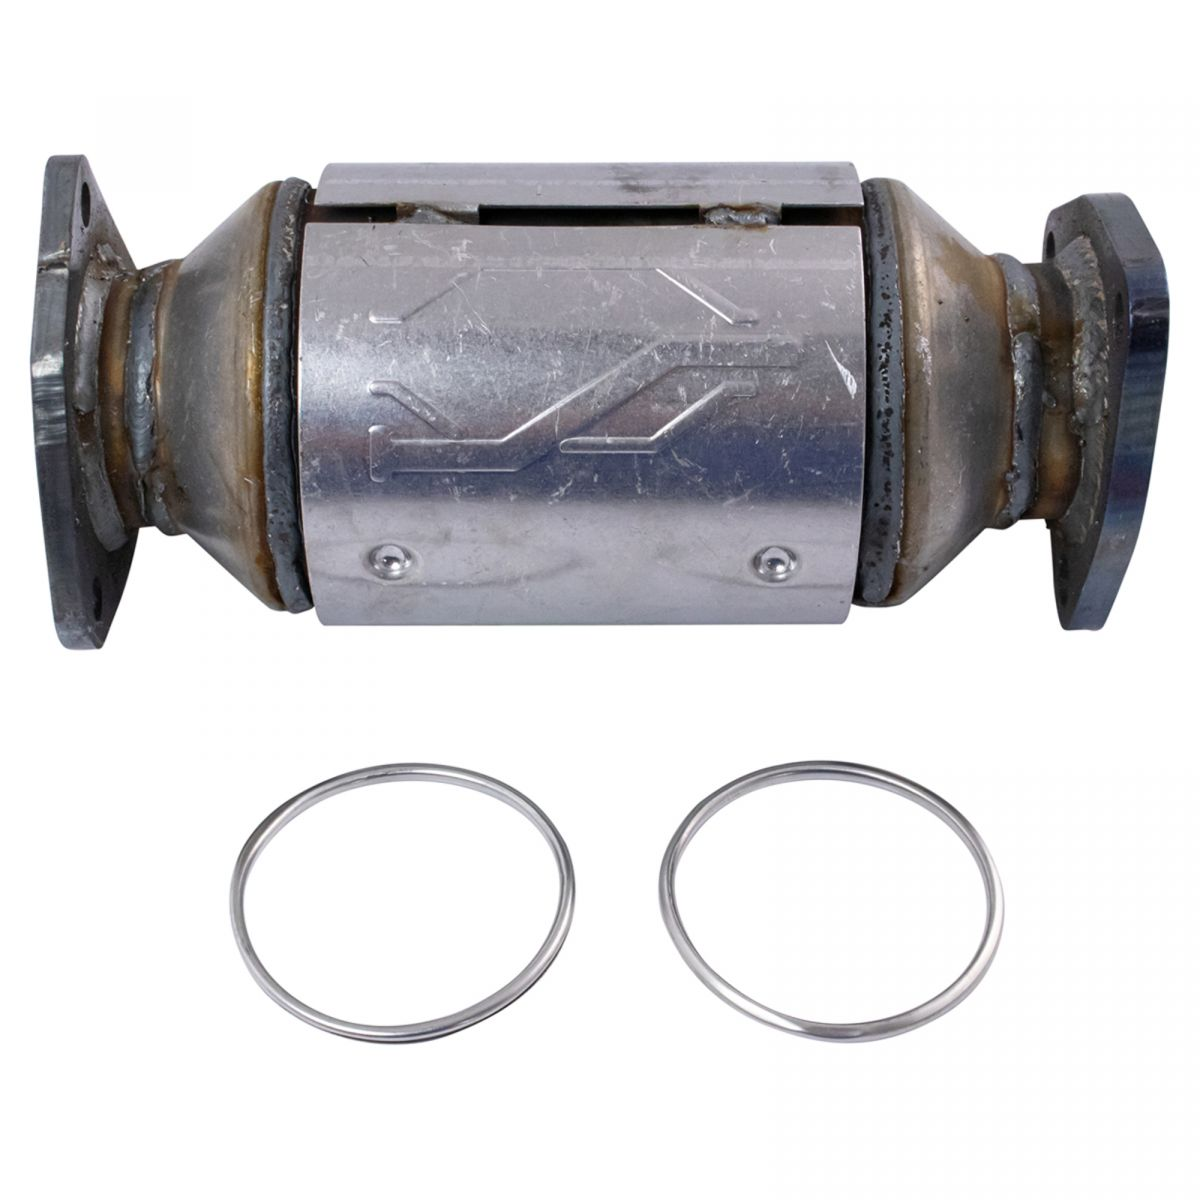 Rear Engine Exhaust Catalytic Converter Assembly For Honda Acura New Ebay